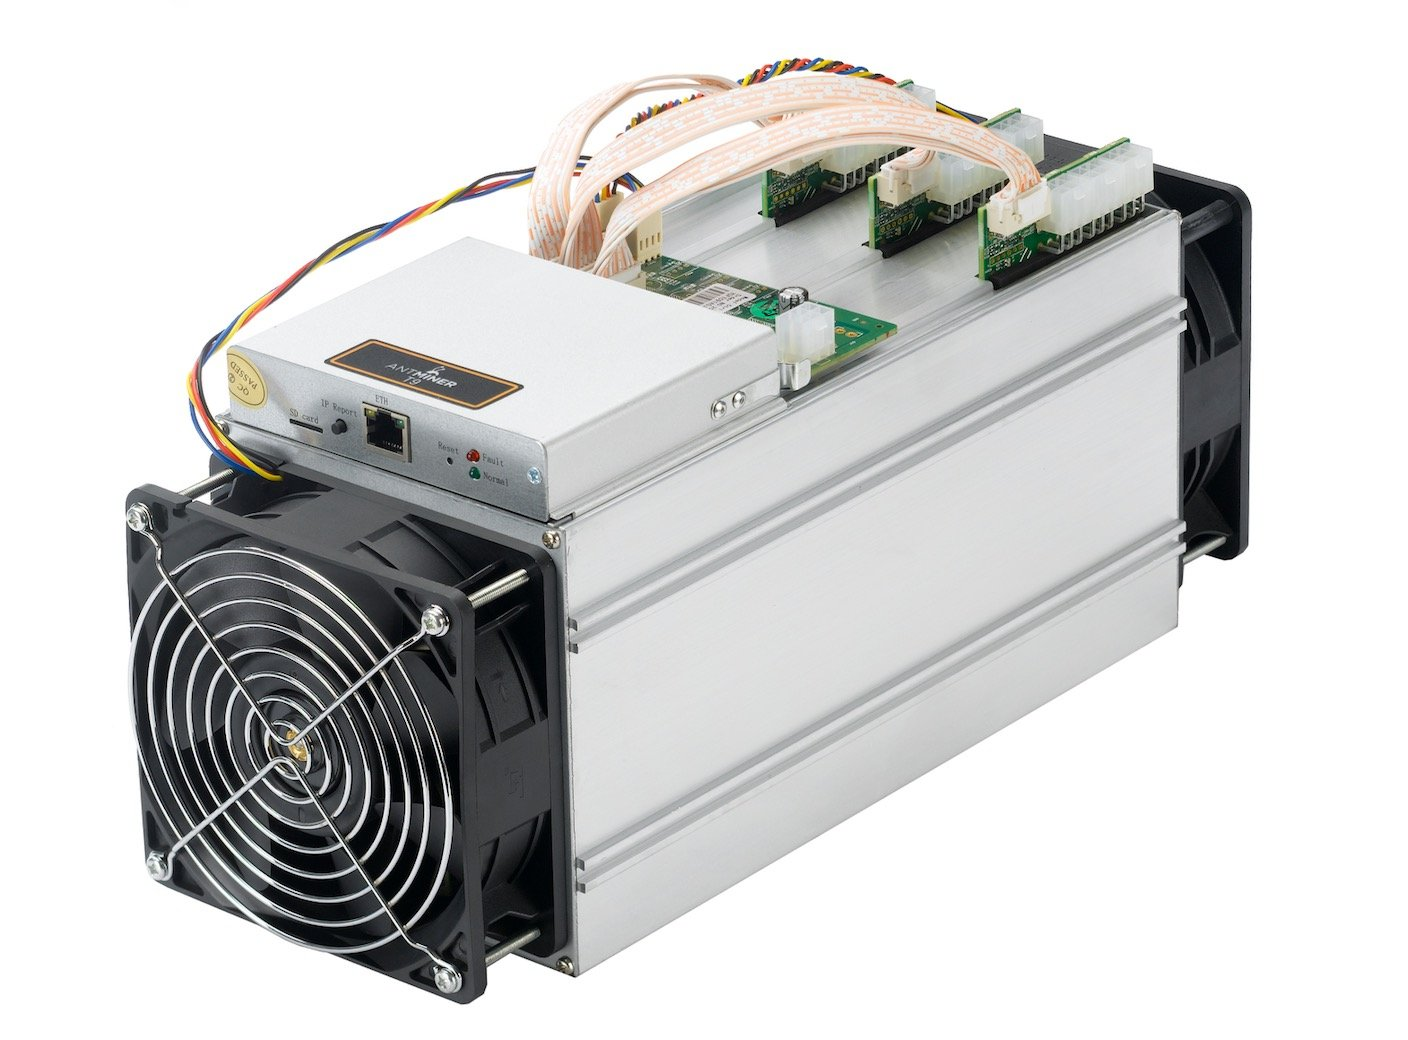 nVidia Geforce GTX 1080 TI ZCash Mining Overview and Profitability  Calculation